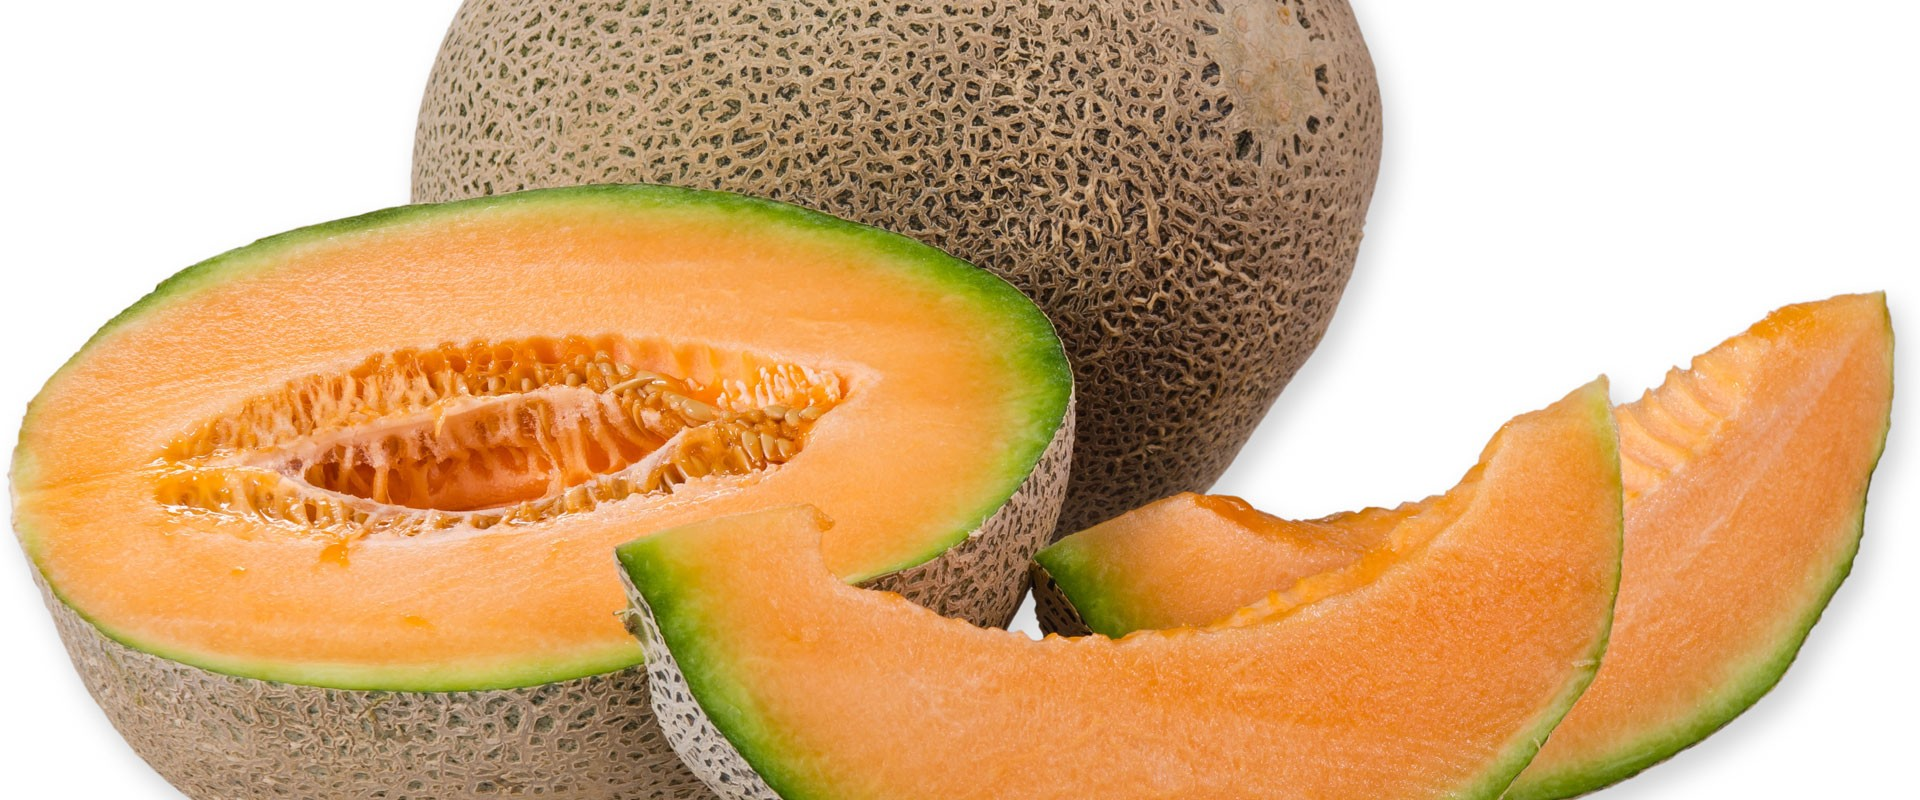 Cantaloupes-Product